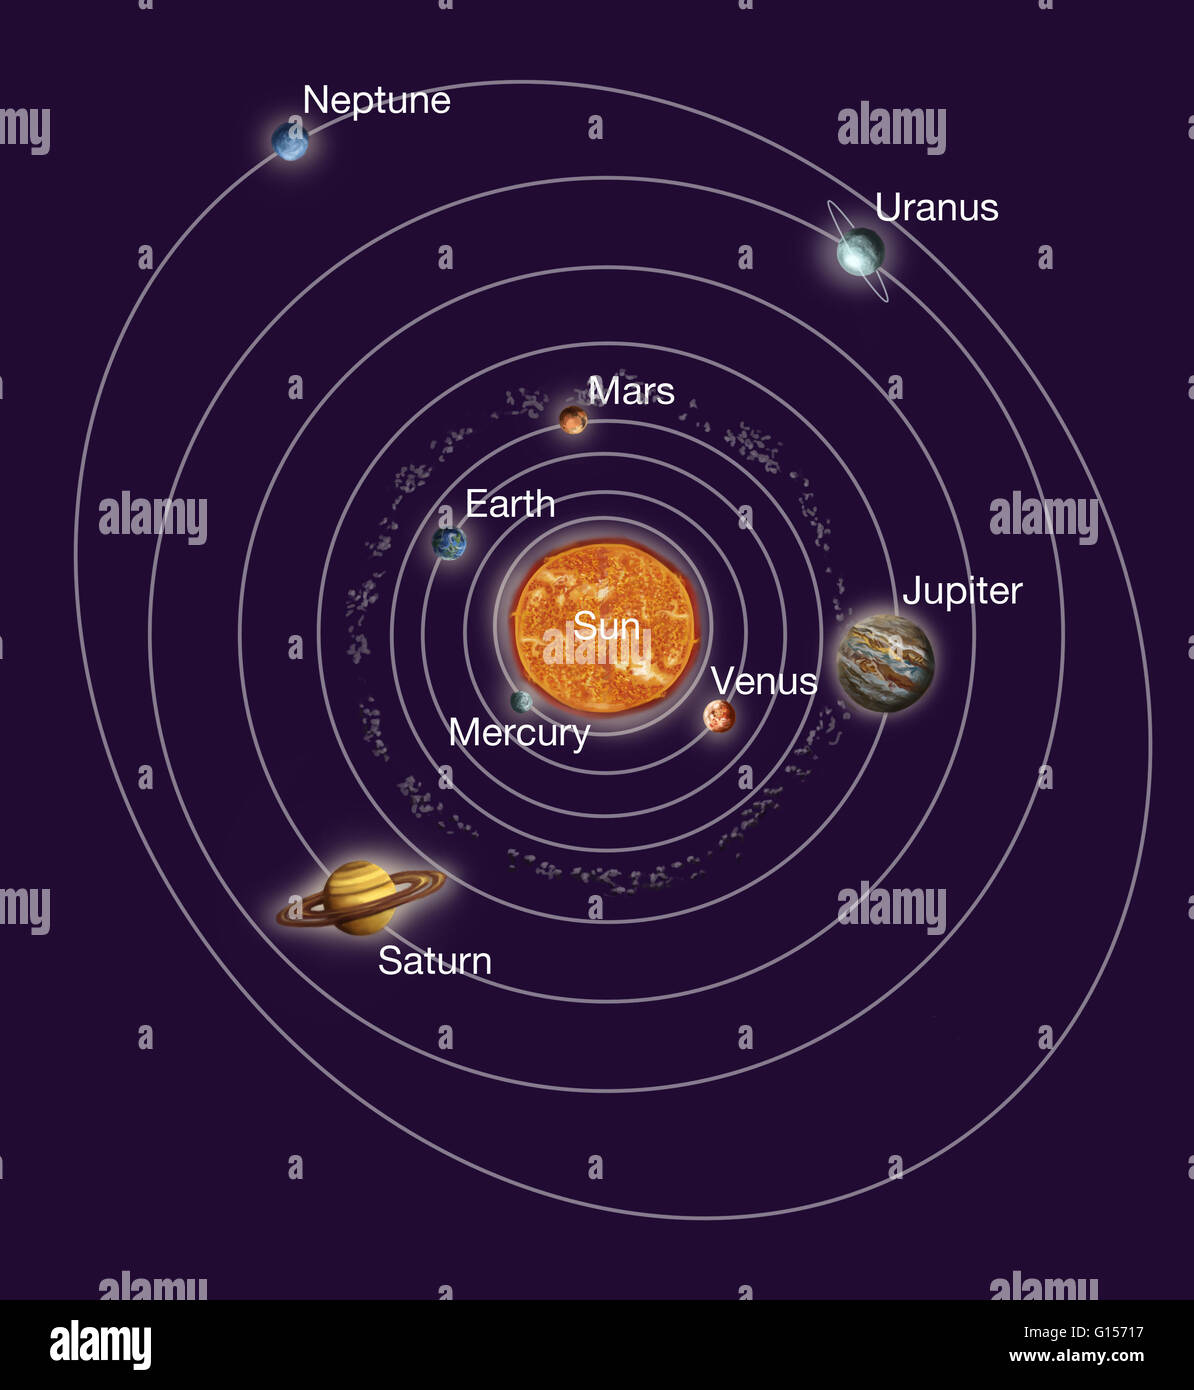 current orbit of inner planets - photo #28